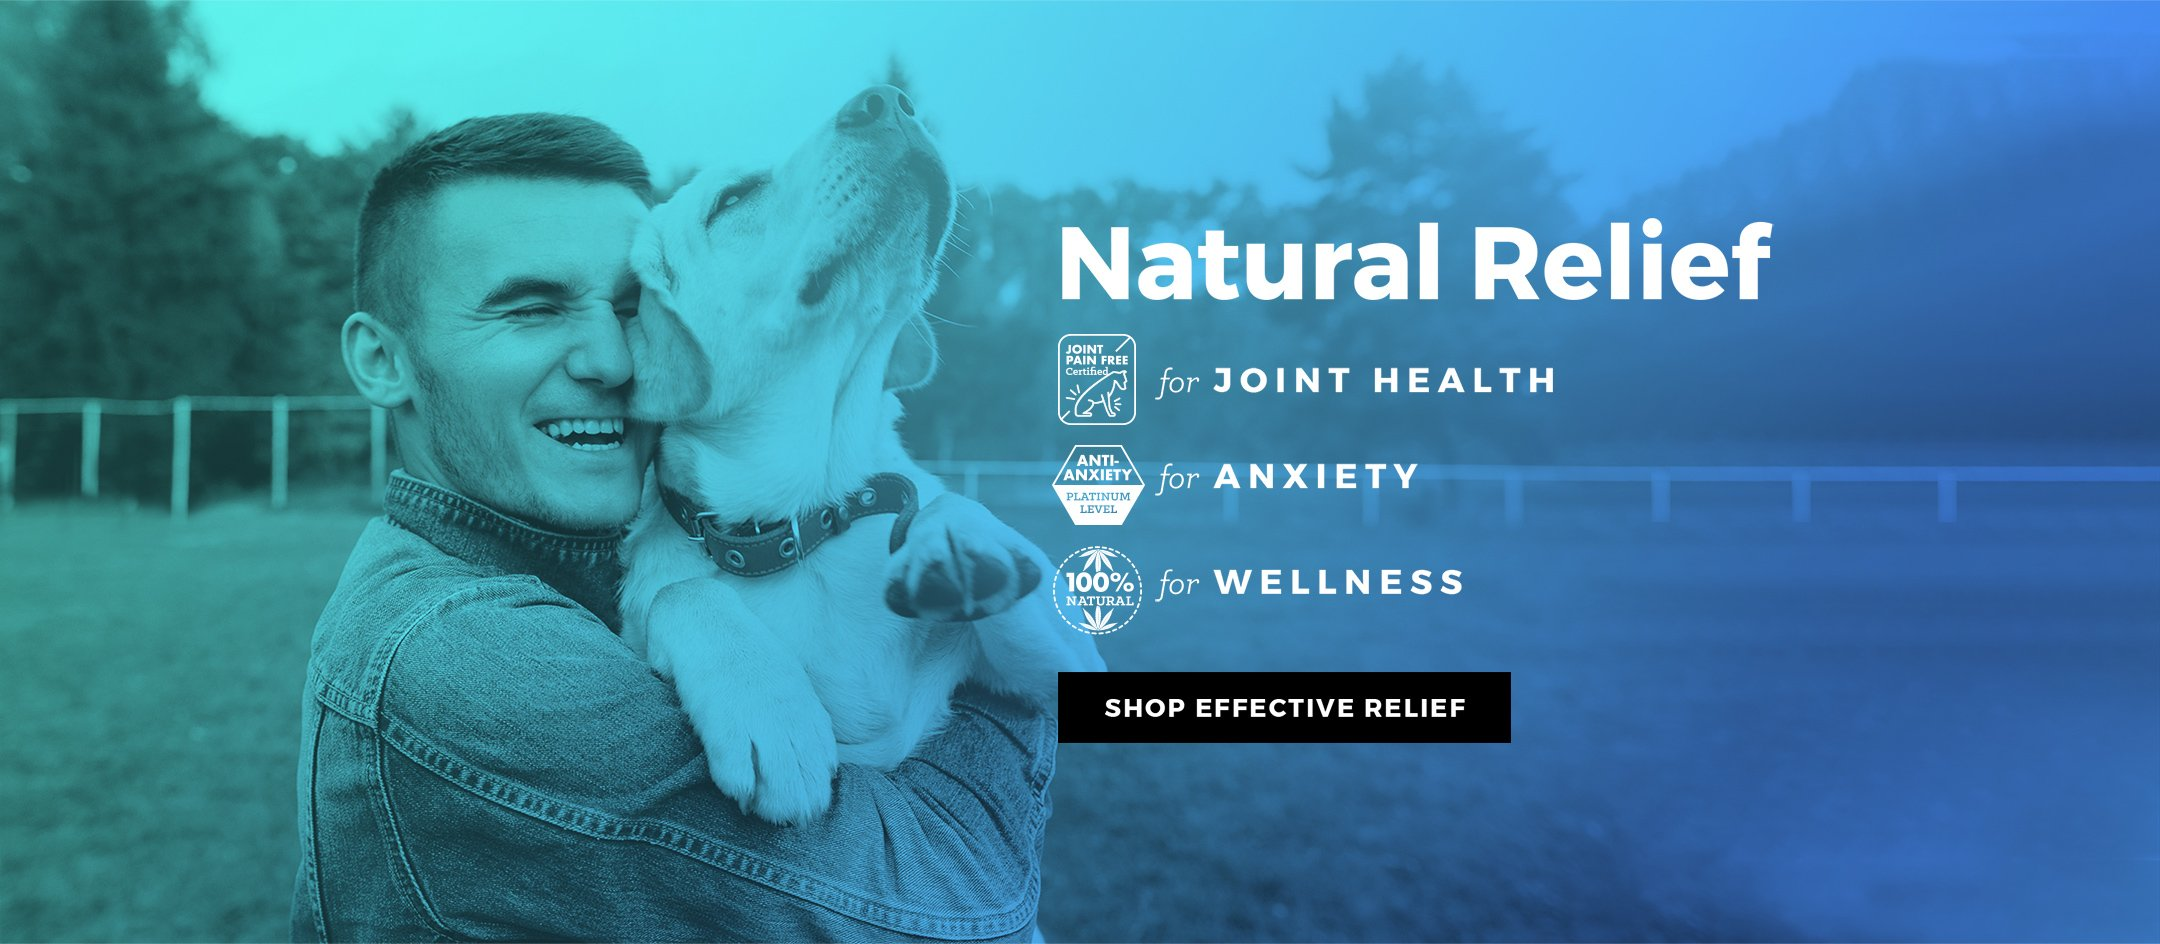 Natural Relief for Joint Health, Anxiety and Wellness